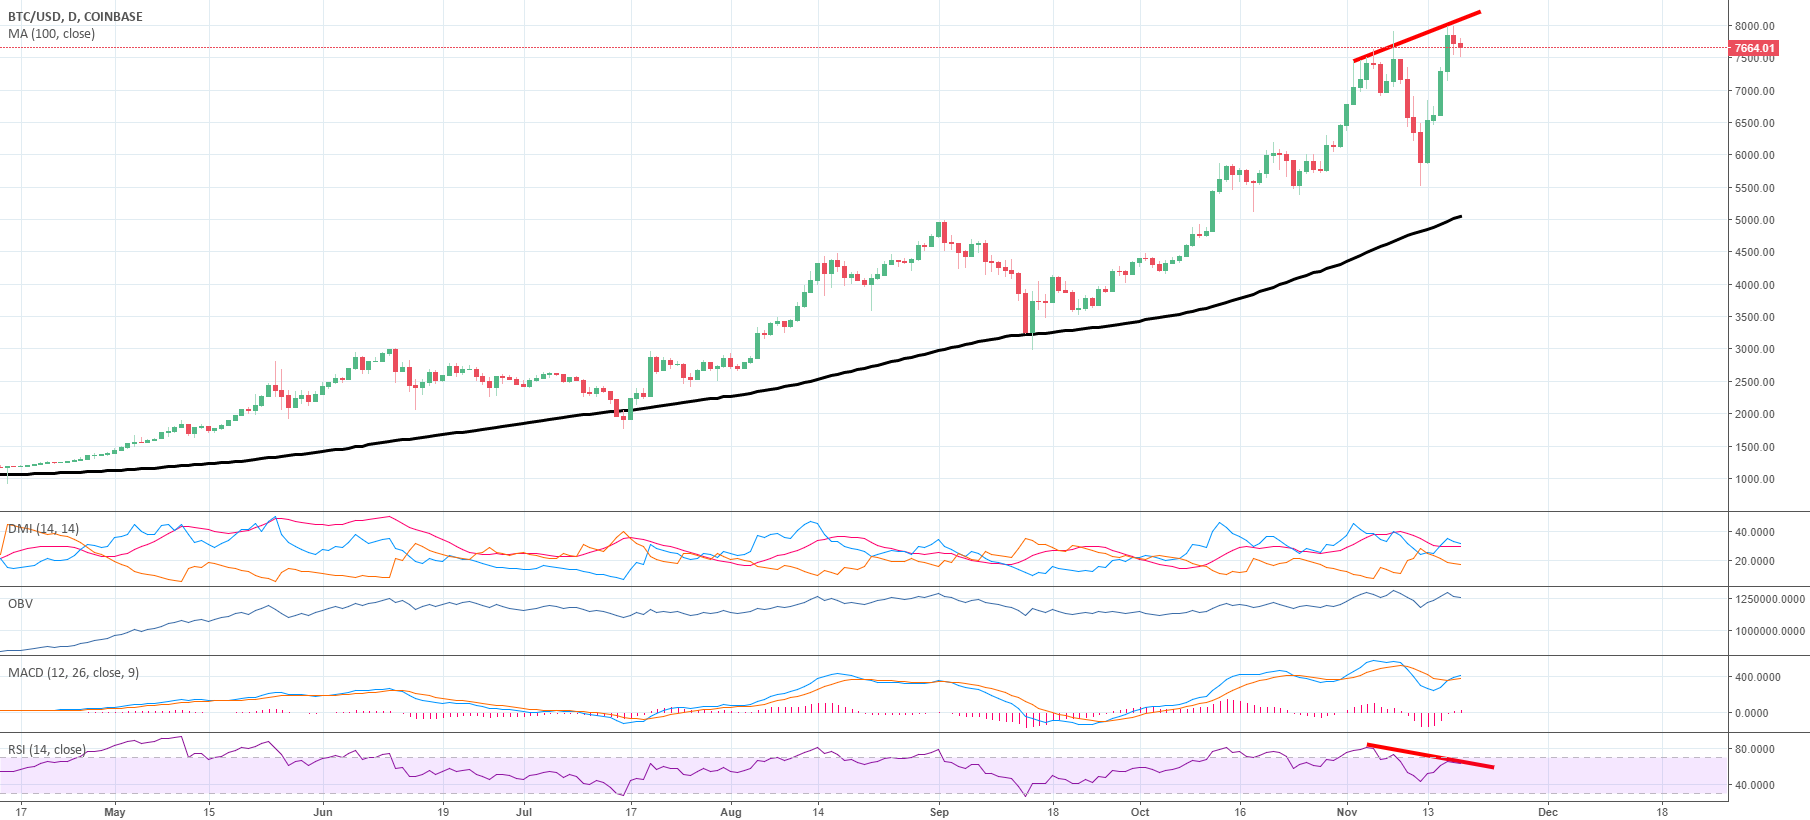 BTC/USD (RSI) Bearish Divergence